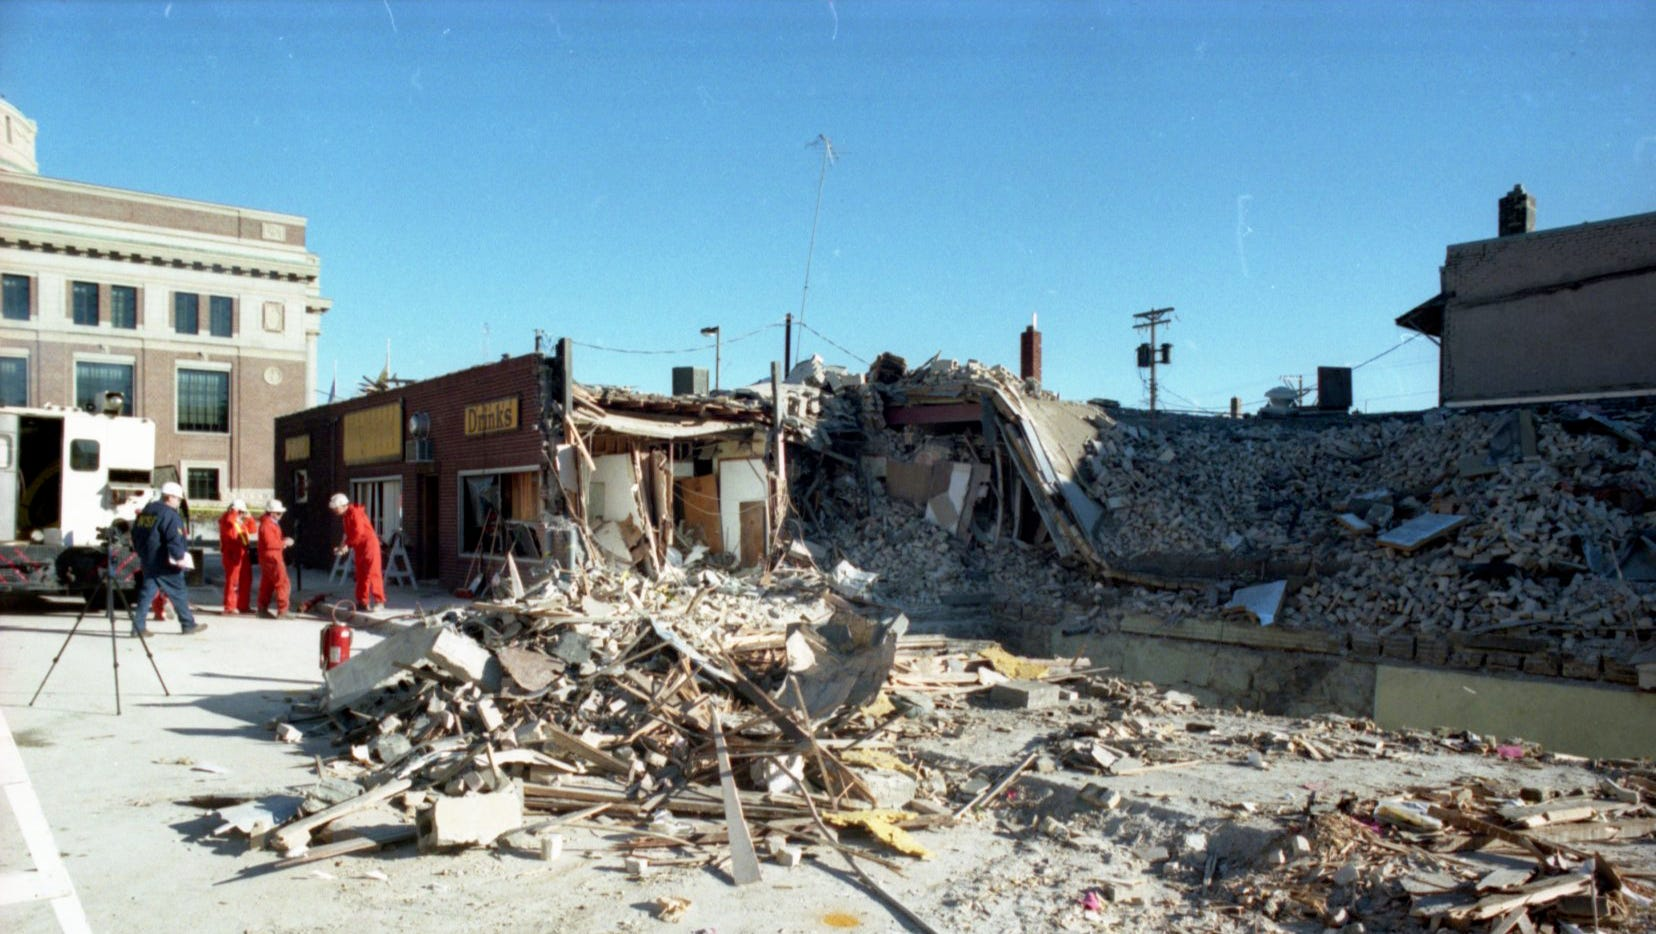 With some rubble cleared away, investigators worked Dec. 12, 1998 to find what caused Friday's explosion.